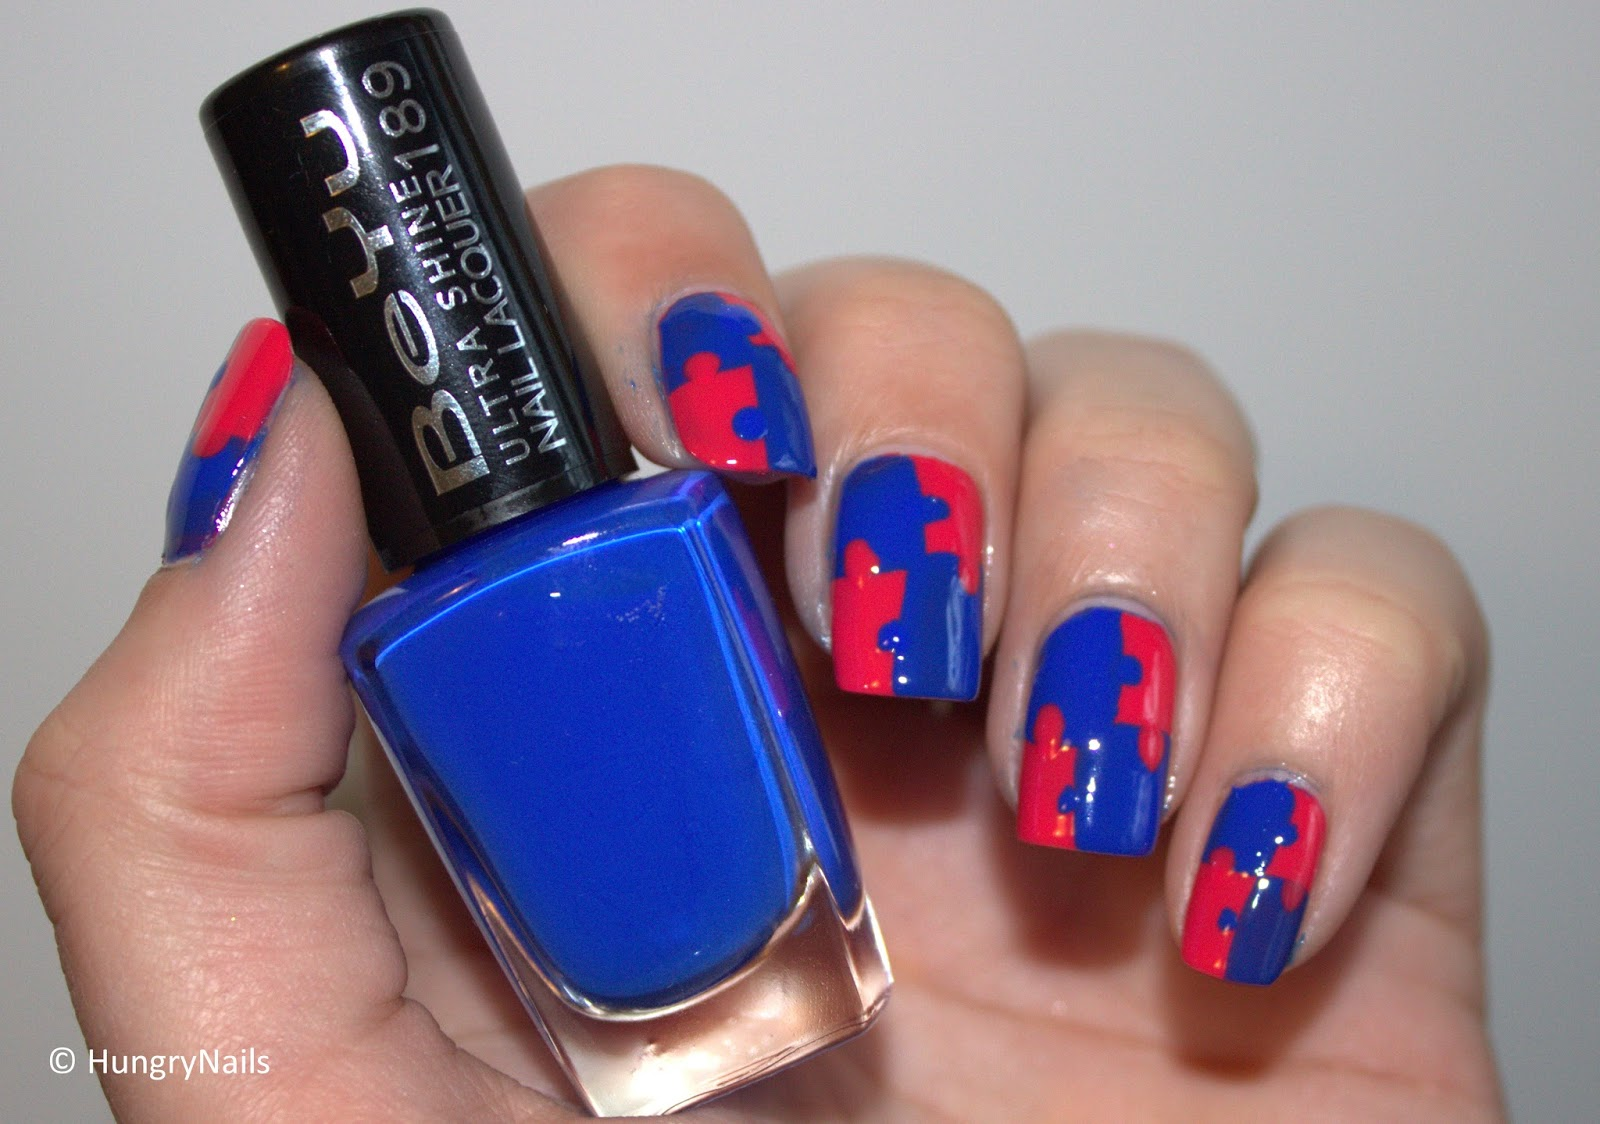 http://hungrynails.blogspot.de/2014/03/manic-monday-game-time.html